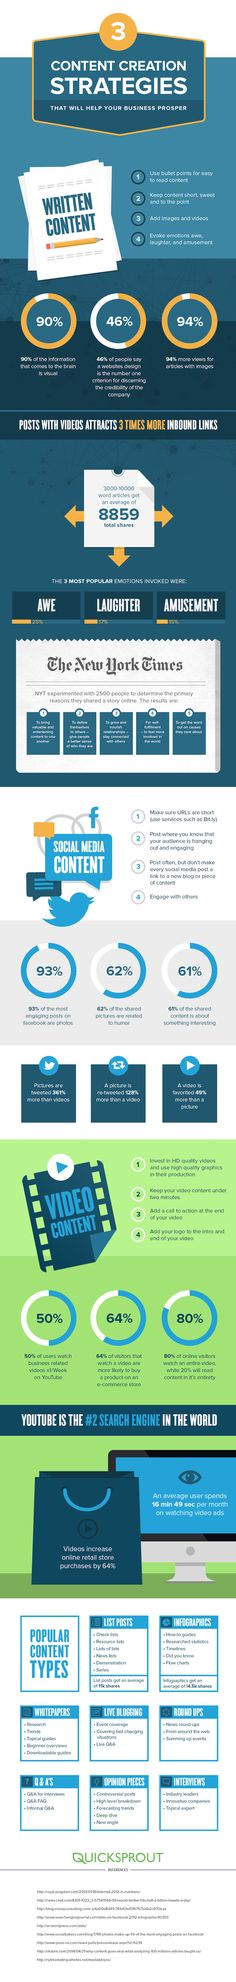 3 Powerful Content Creation Strategies for Social Media Marketersr - #infographic #contentmarketing #socialmedia